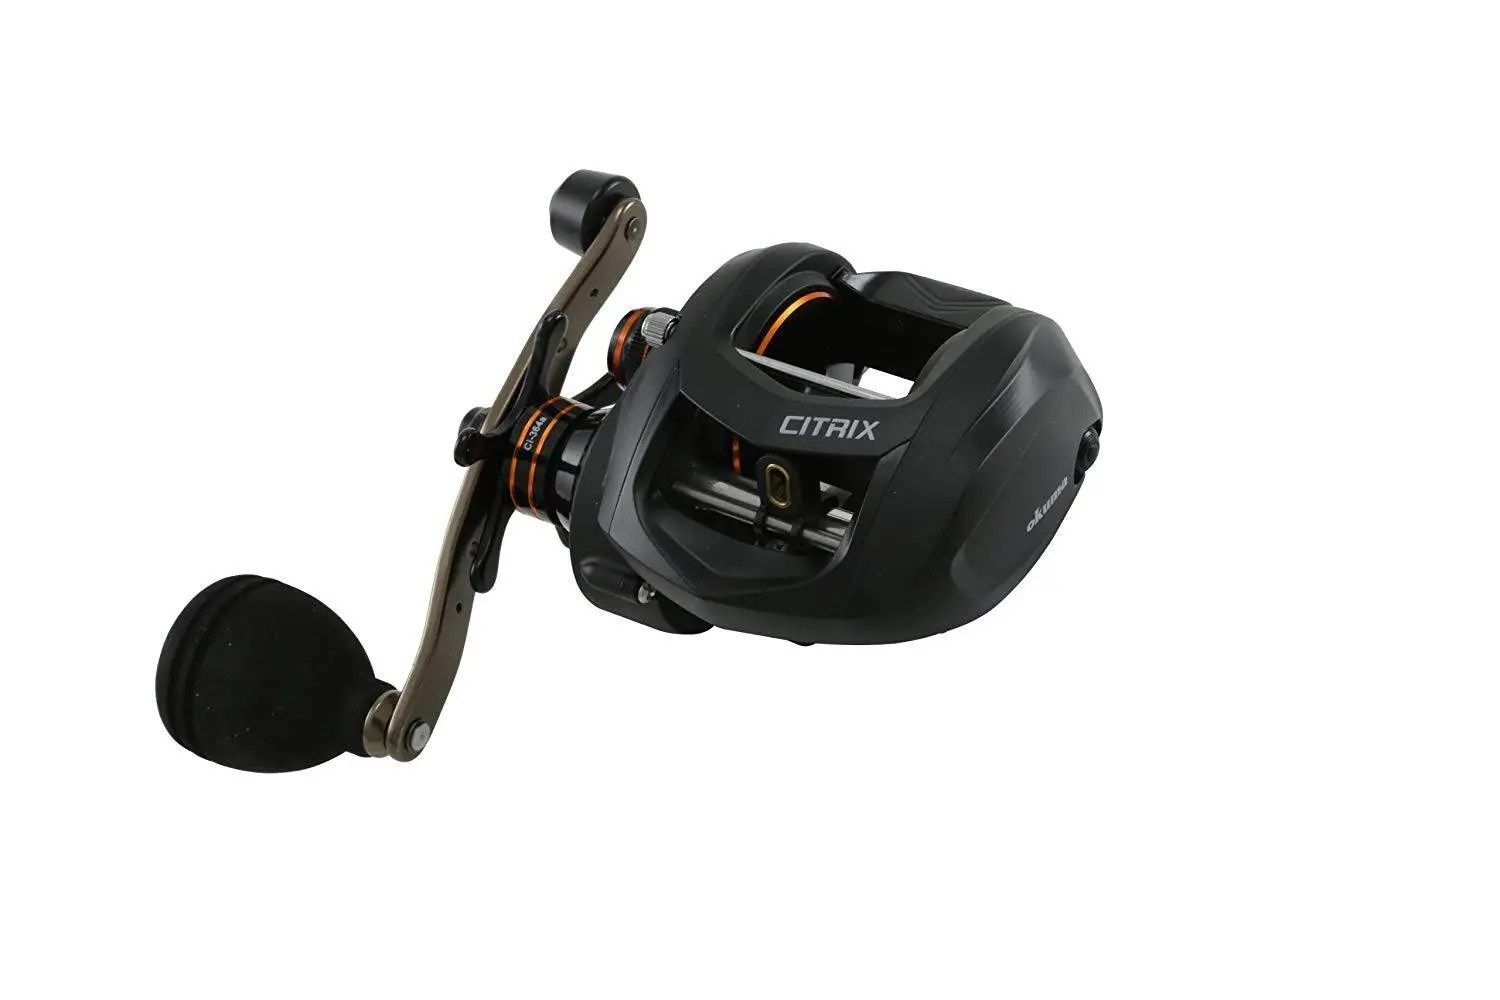 Okuma Citrix 300 Large Capacity Low Profile Baitcaster